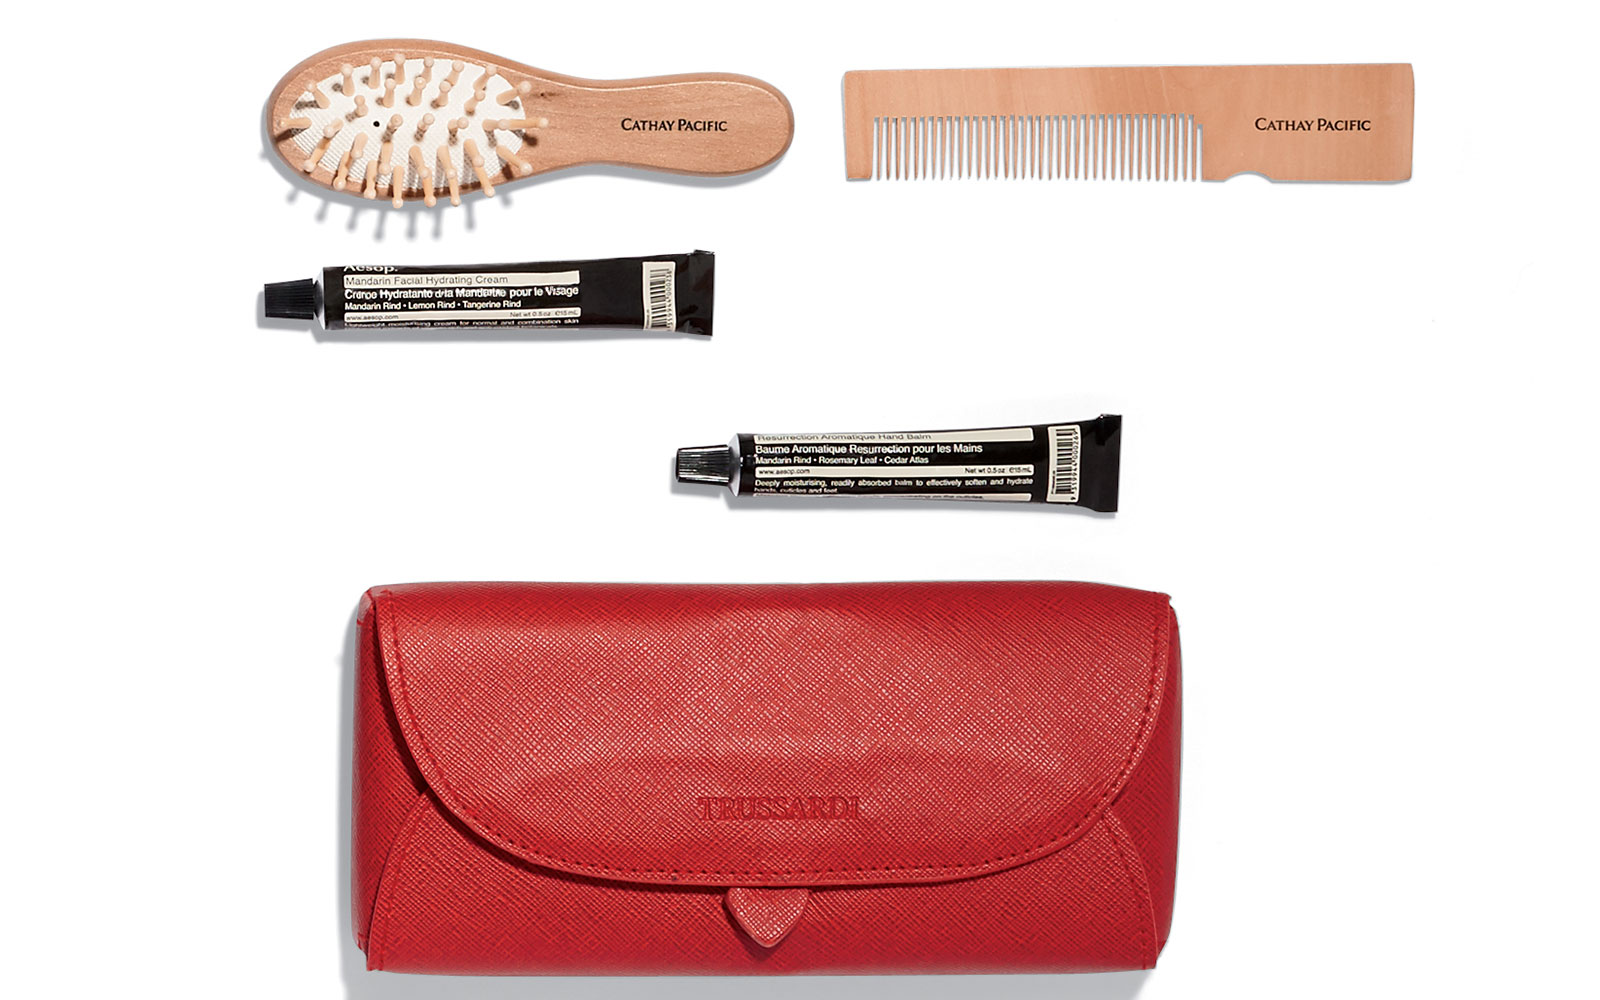 Coolest Airline Amenity Kits: Cathay Pacific - First Class Female Travel Kit